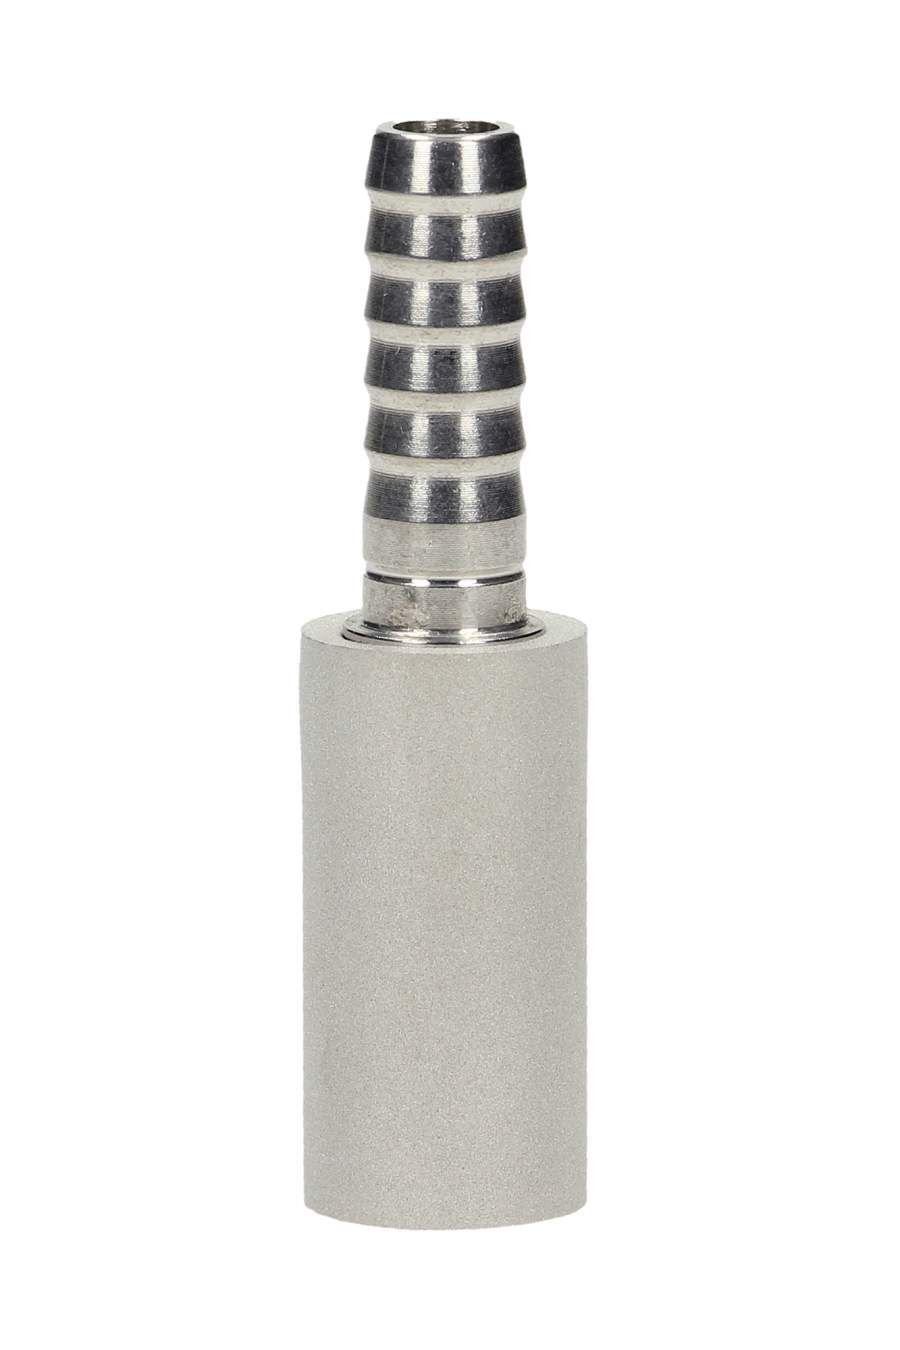 AERATION STONE 0.5 MICRON FOR BEER CARBONATION OR AERATE WORT AFTER THE BOIL